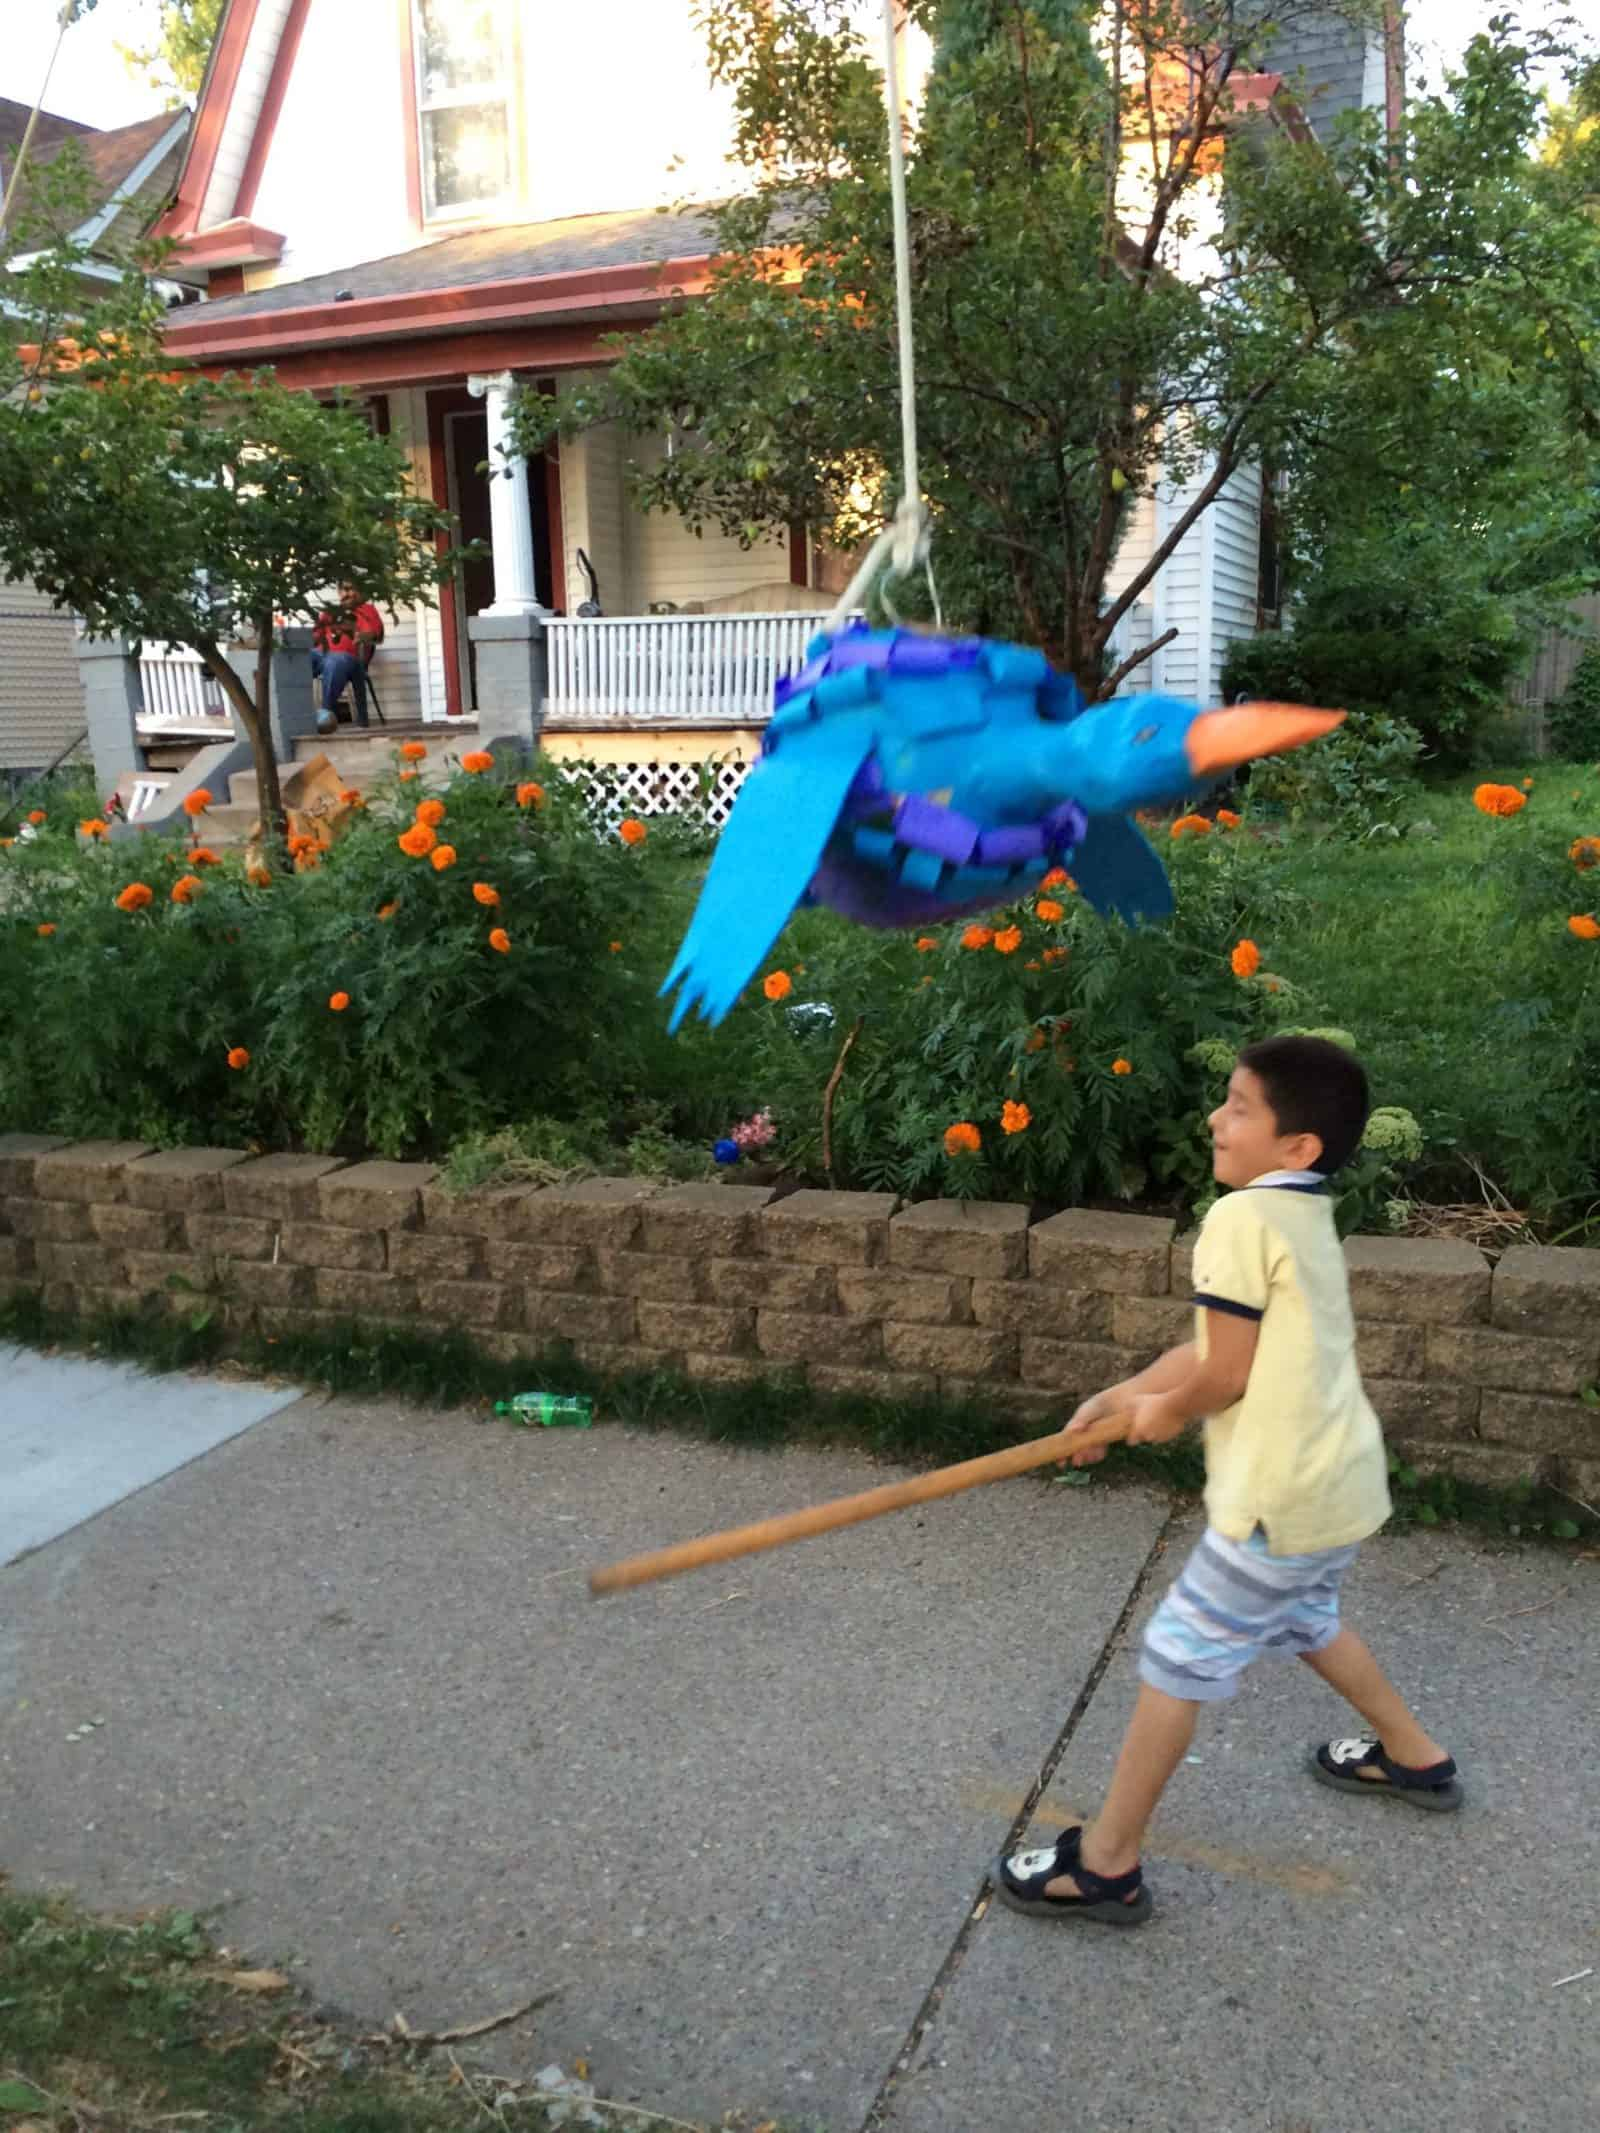 The pinata we break at National Night Out in our neighborhood.